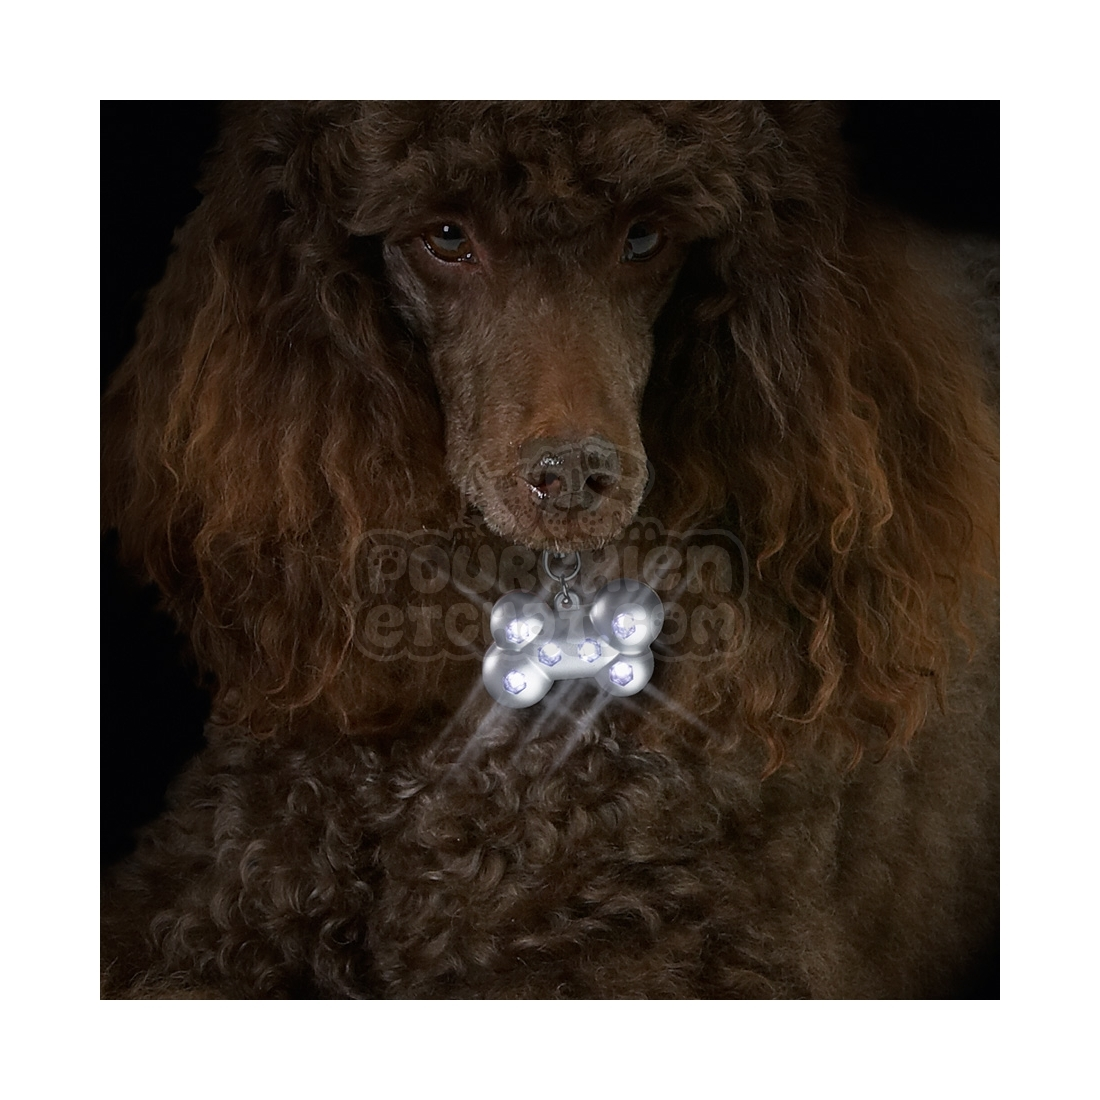 pendentif lumineux pour chien led os. Black Bedroom Furniture Sets. Home Design Ideas